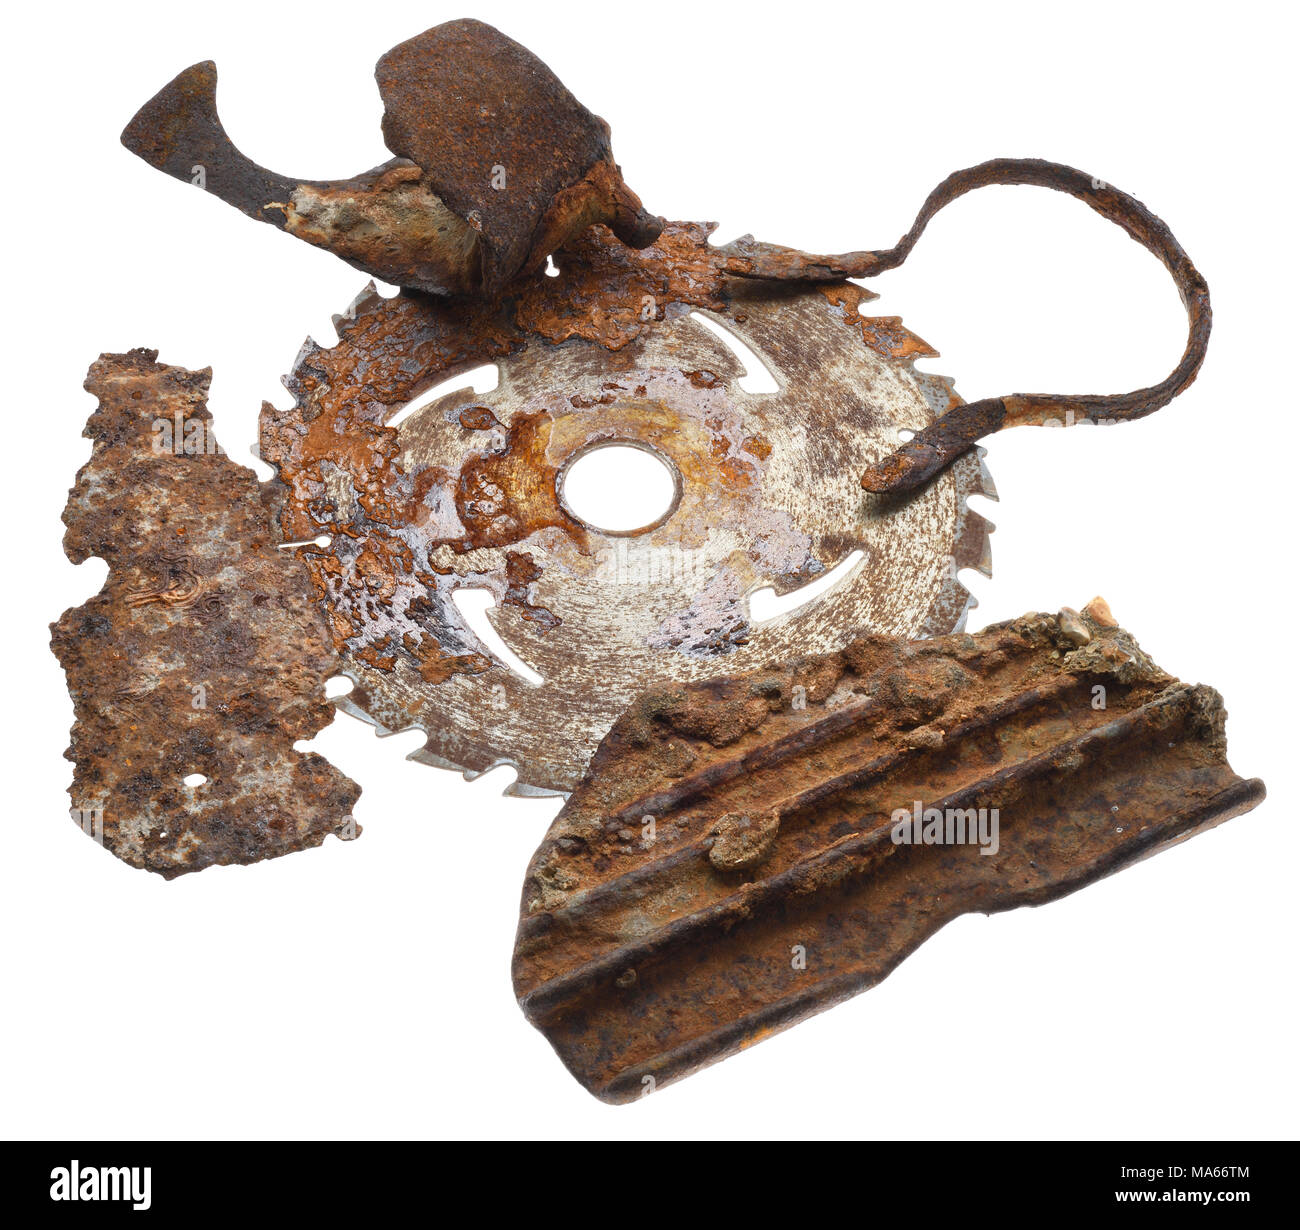 An arrangement of rusted pieces of metal to form a composition. - Stock Image